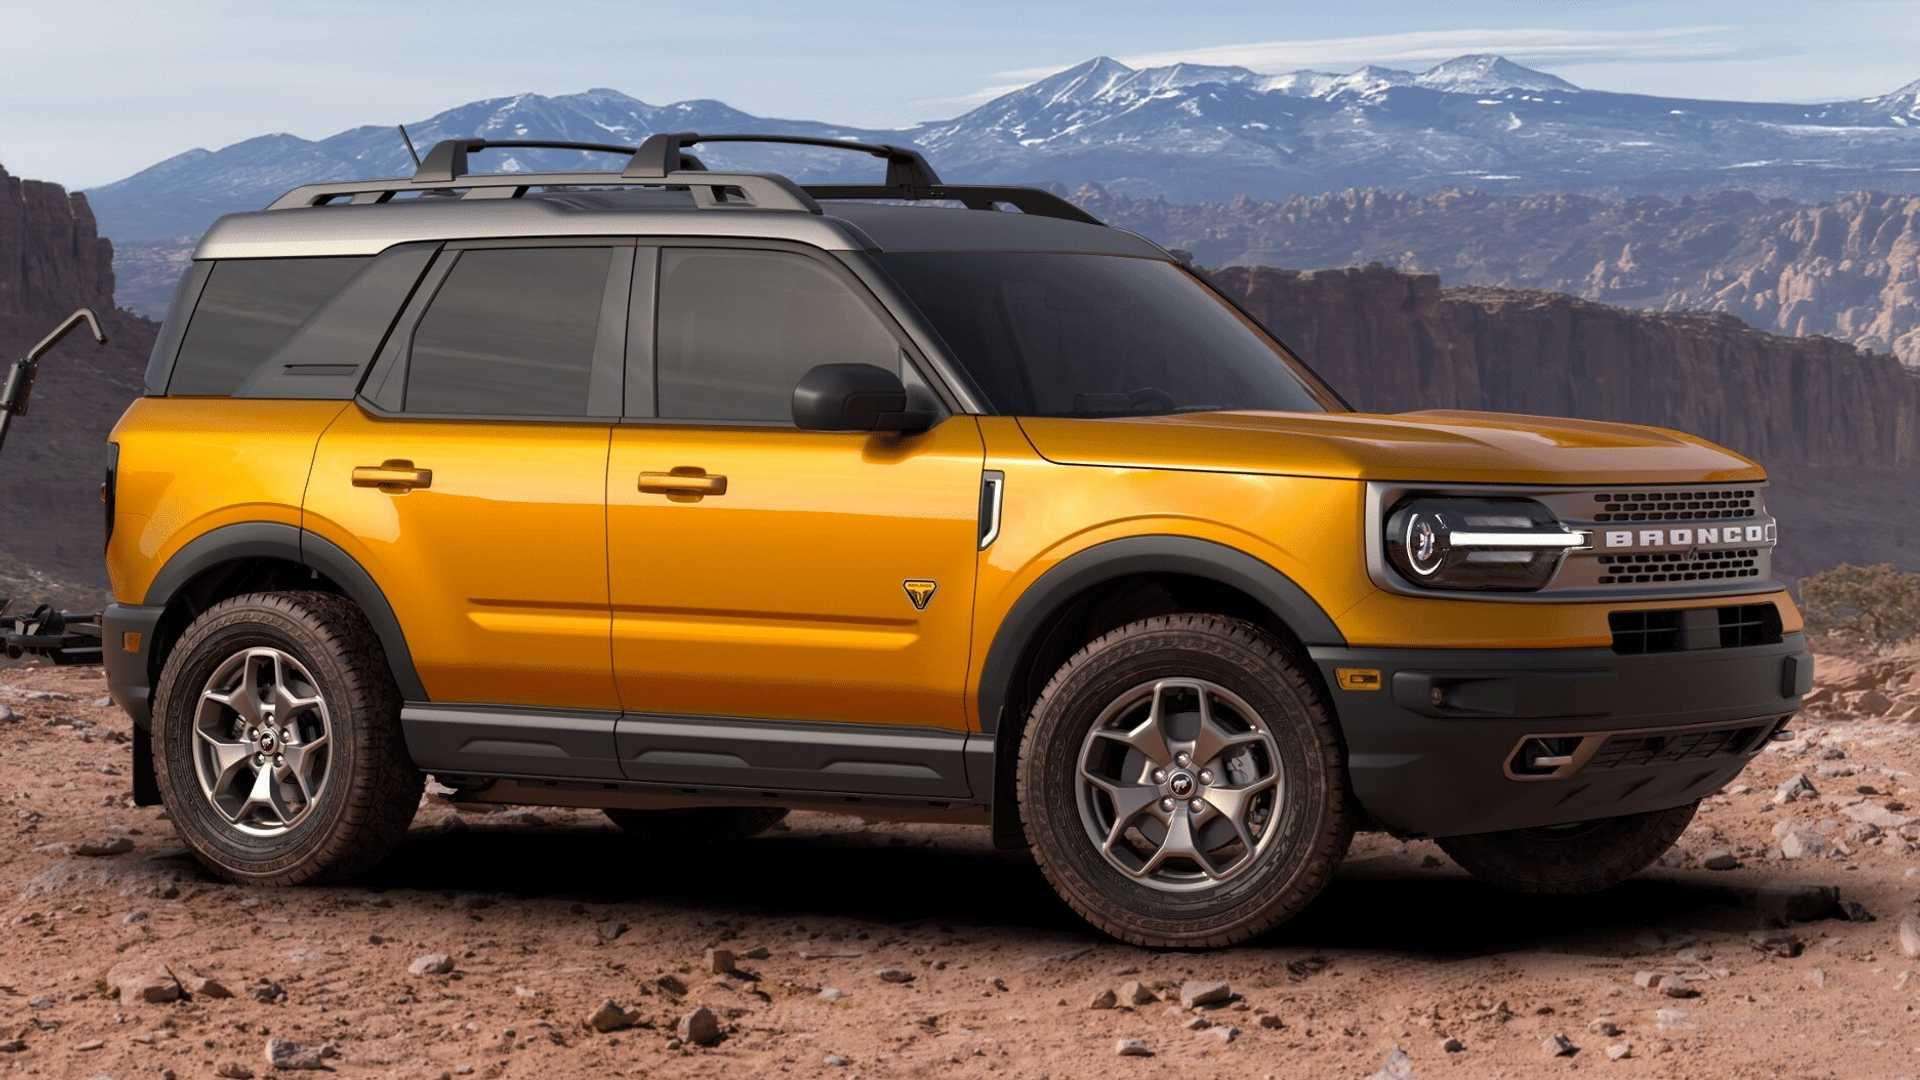 Ford Bronco Sport Price In Qatar New Ford Bronco Sport Photos And Specs Yallamotor